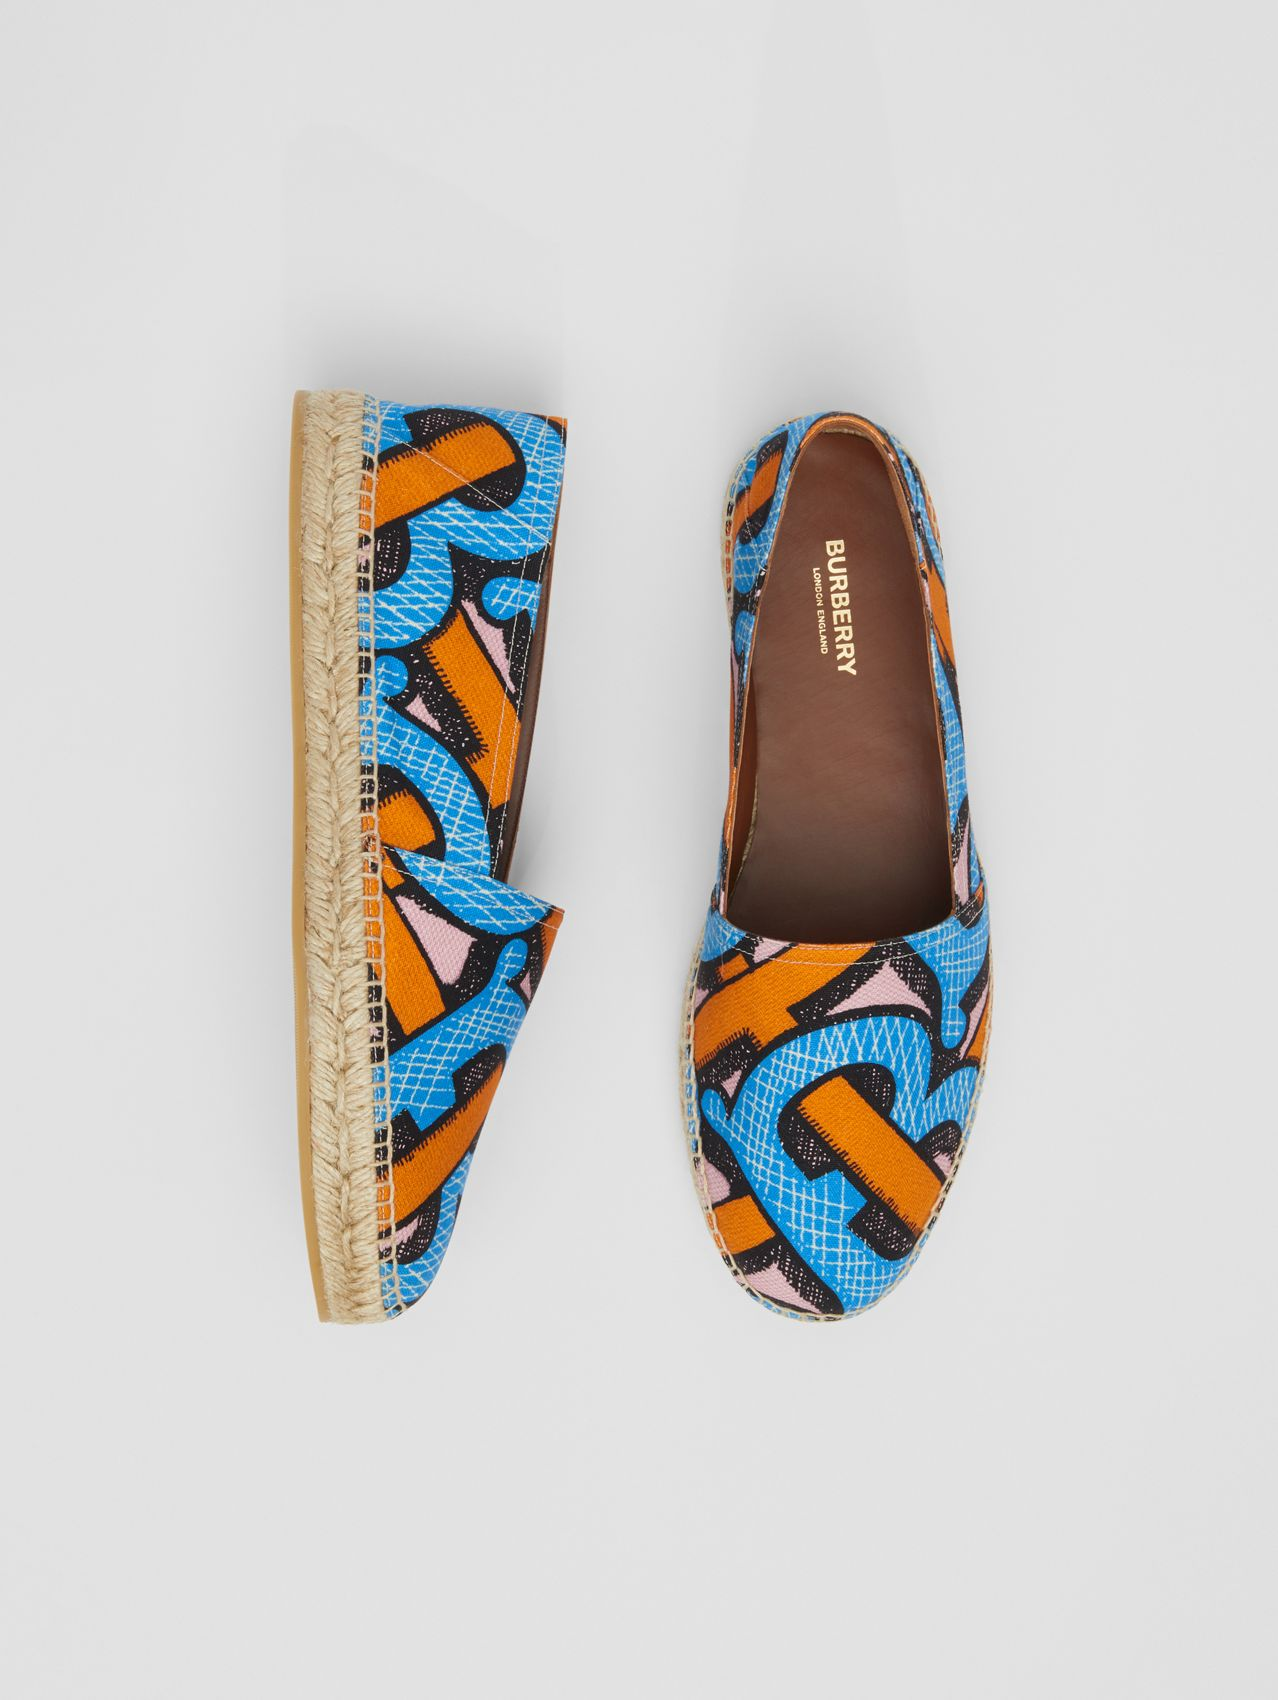 Monogram Print Cotton Canvas Espadrilles (Bright Cobalt)